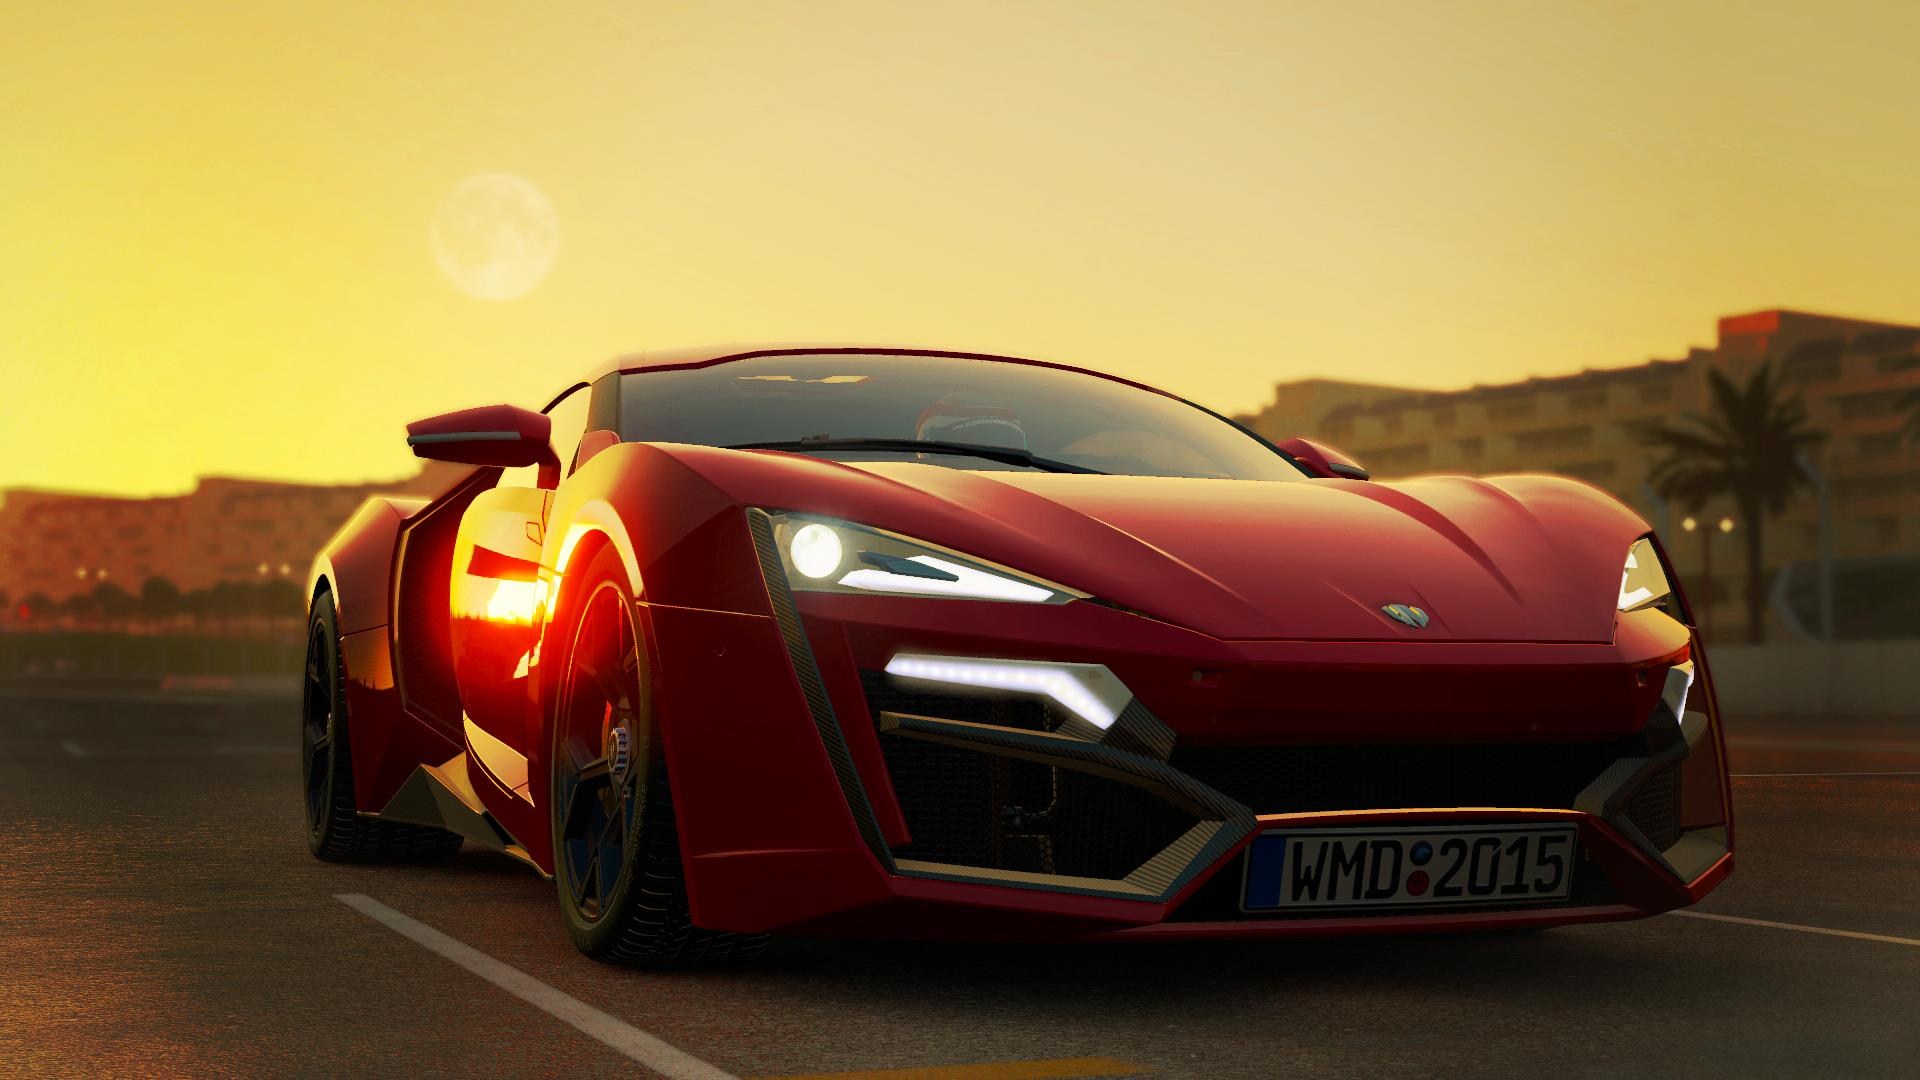 2015 Lykan Hypersport Red front